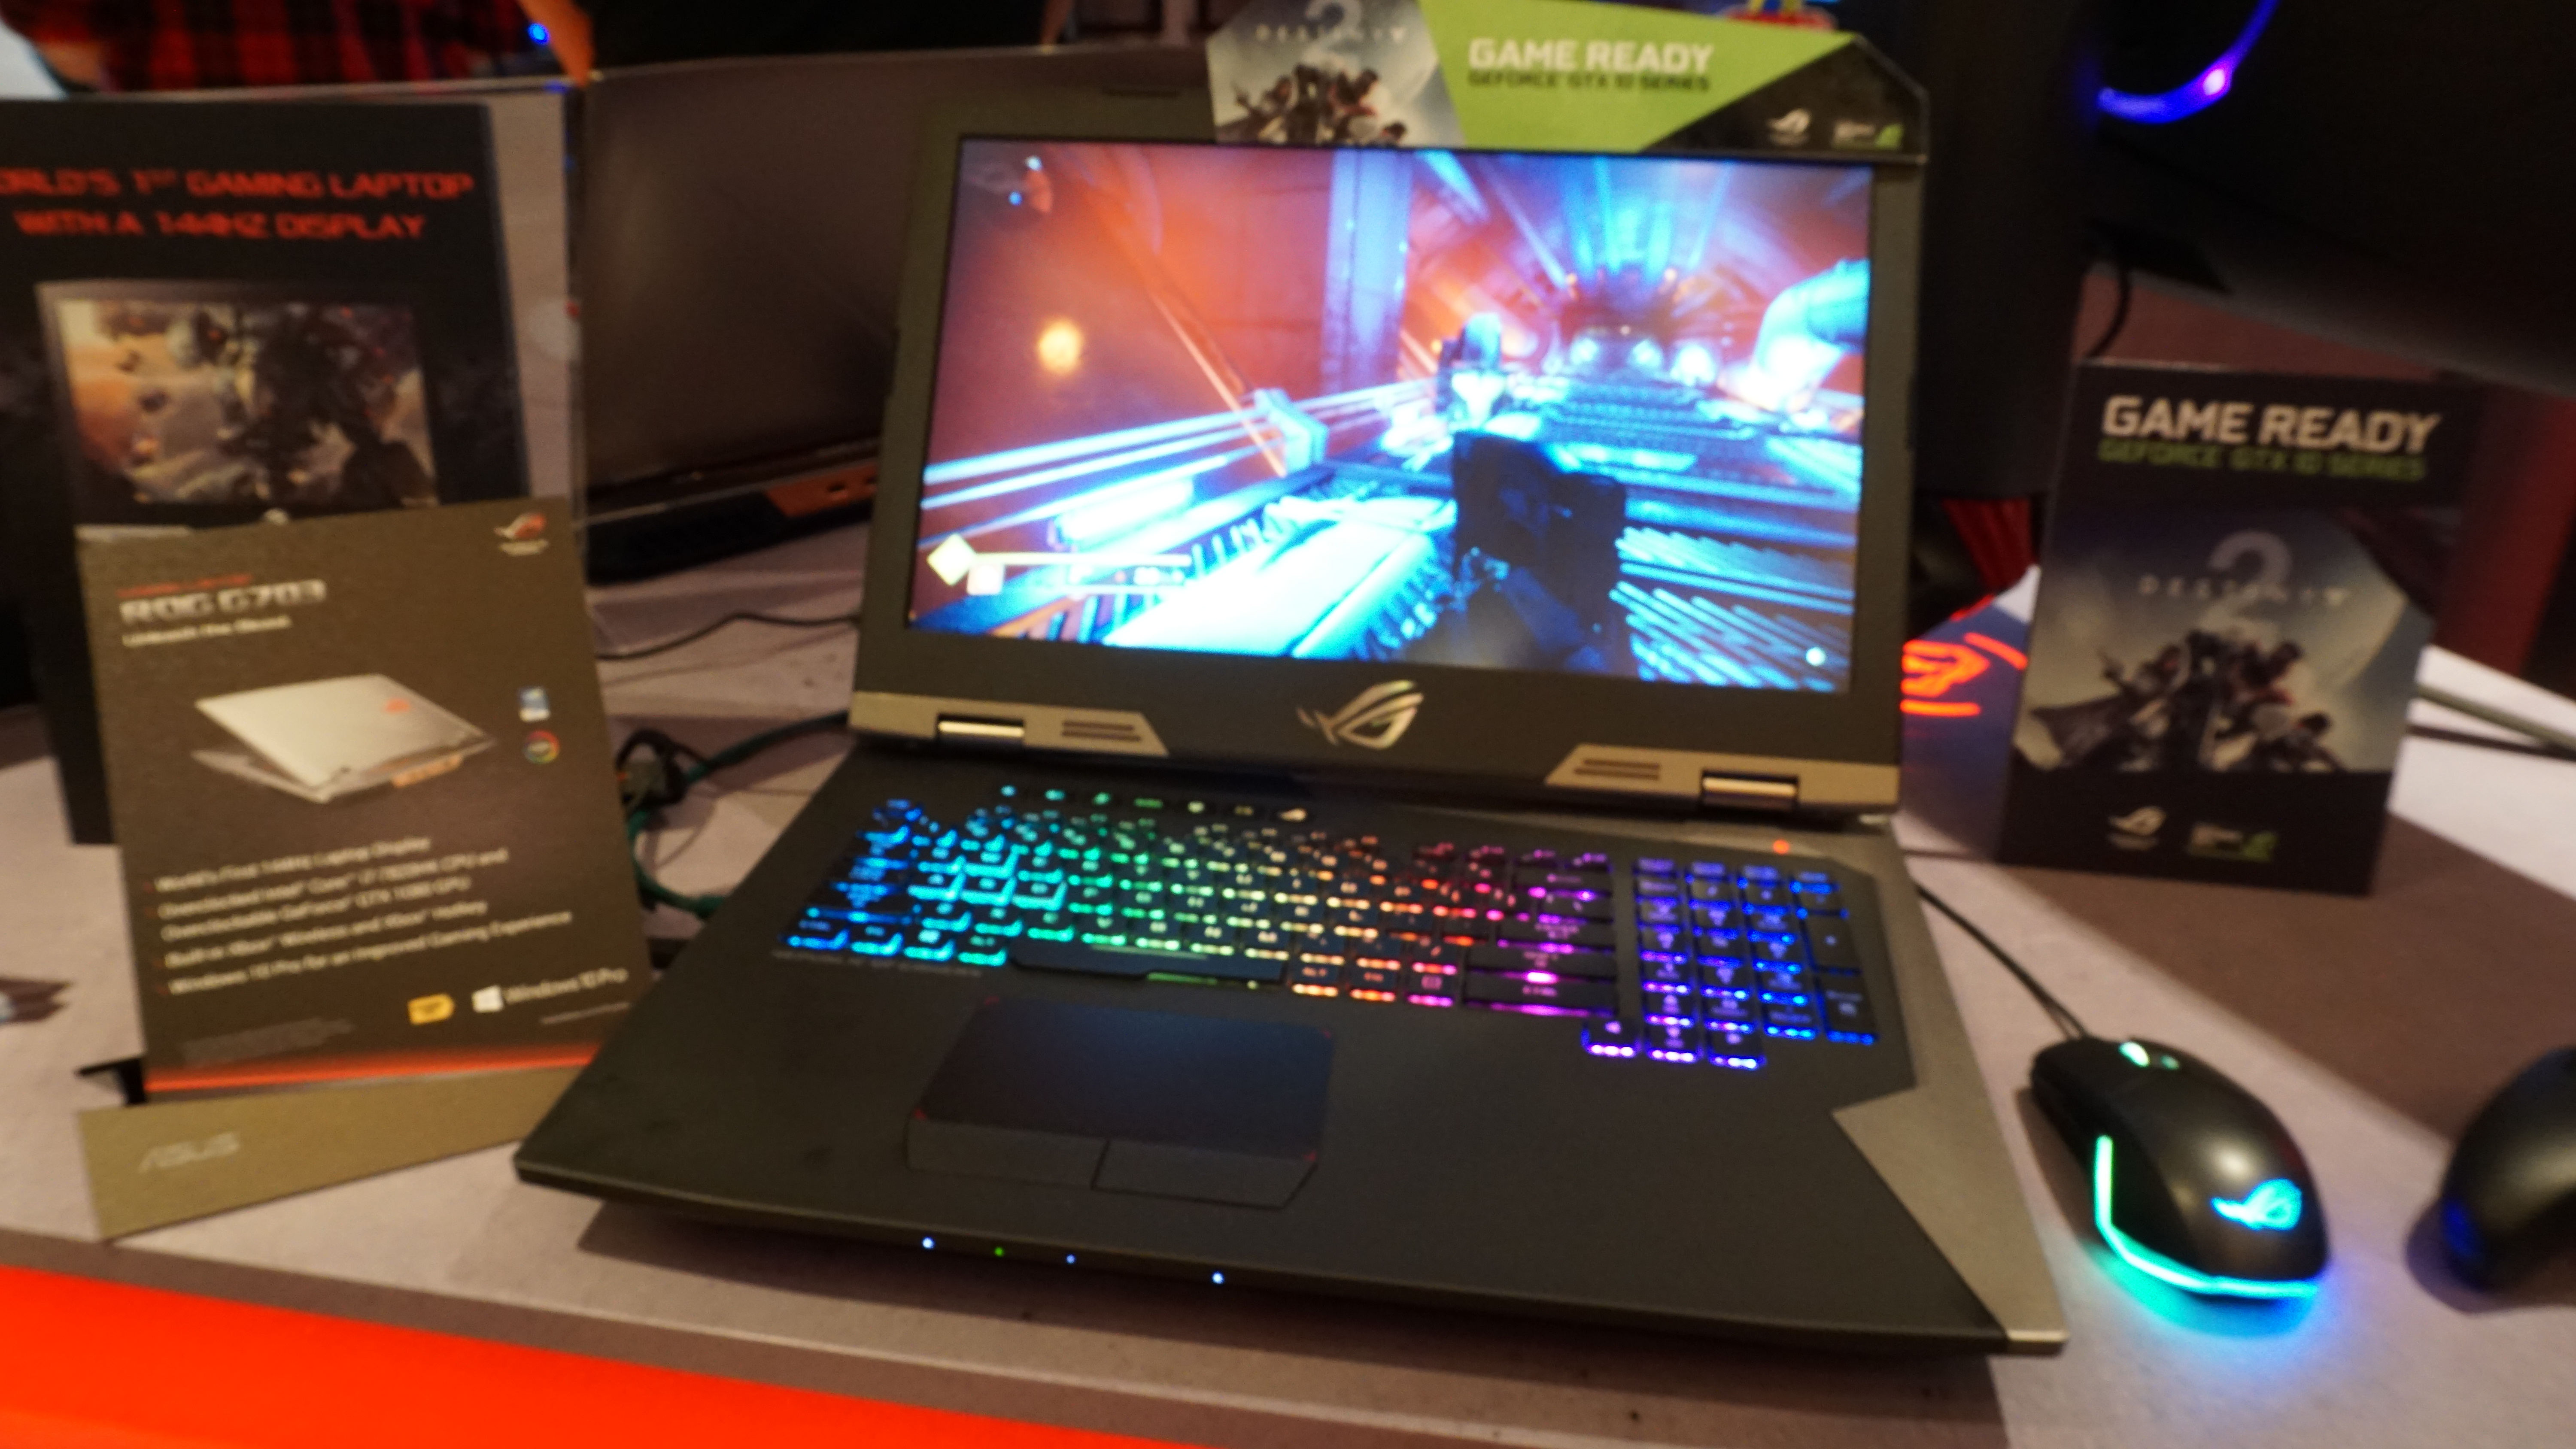 ASUS ROG Gaming Laptop with 144 Hz IPS G-SYNC display | Blur